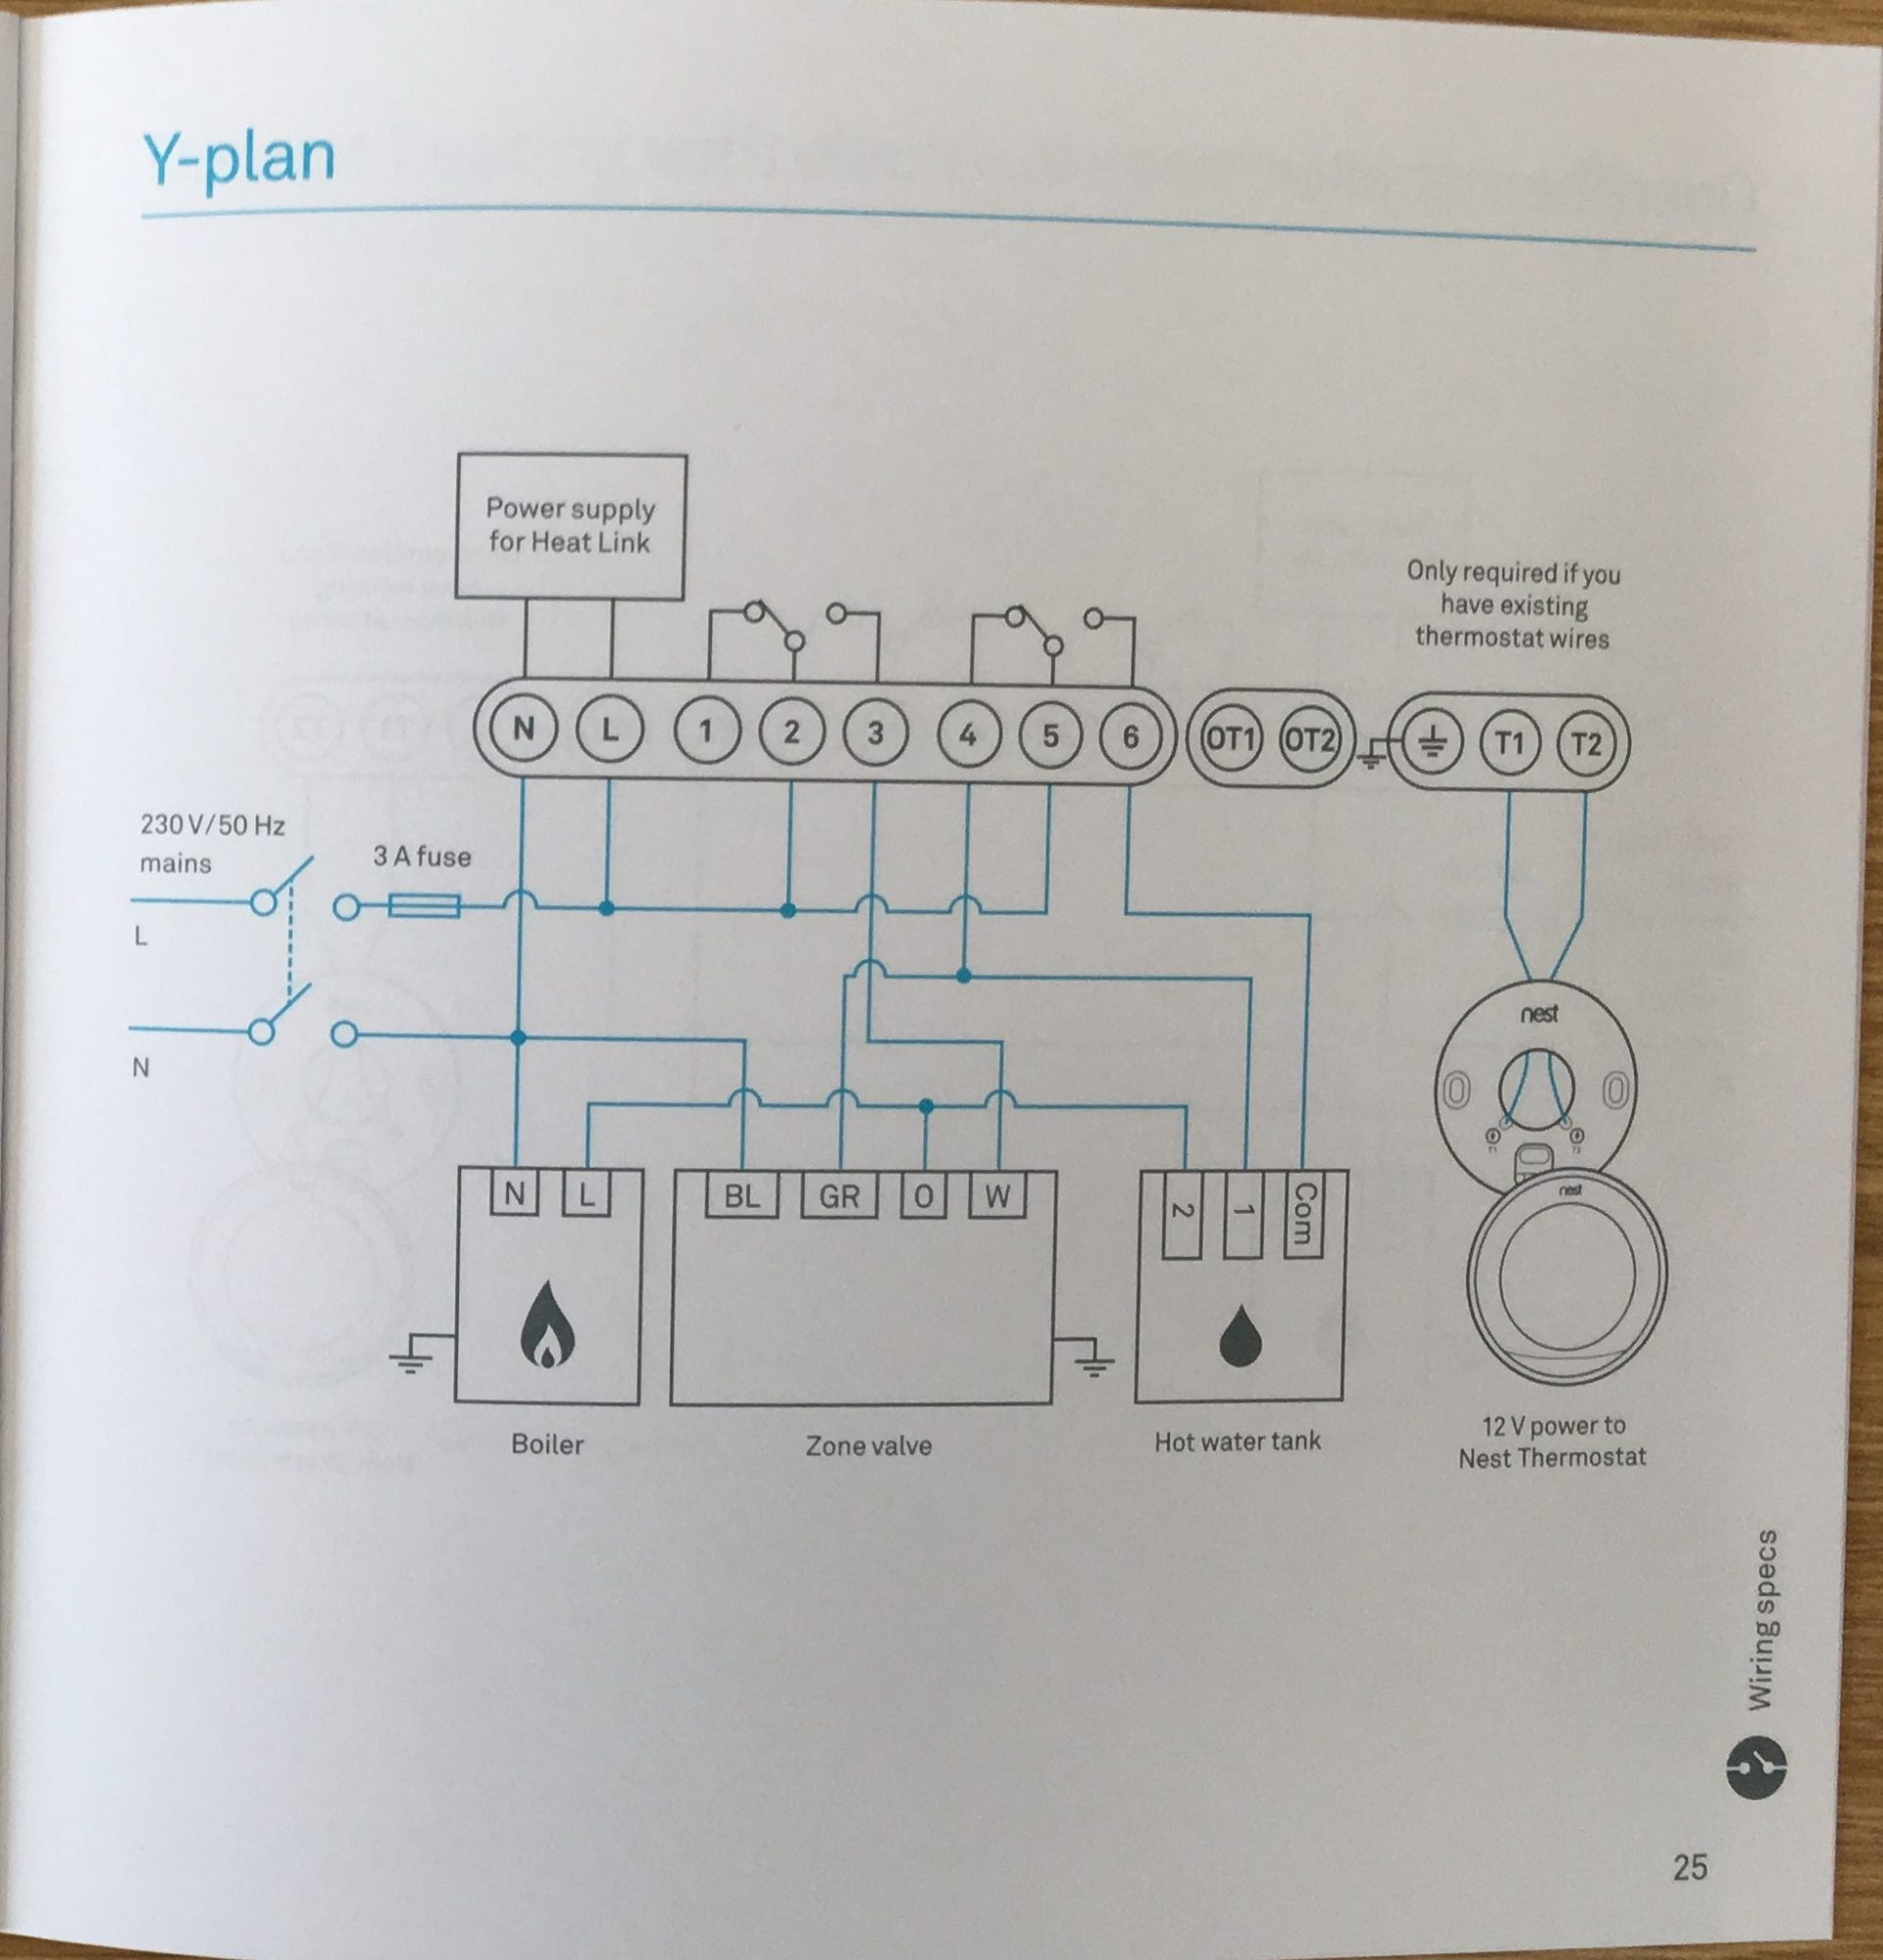 How To Install The Nest Learning Thermostat (3Rd Gen) In A Y-Plan - Nest 3Rd Generation Wiring Diagram Uk Splan